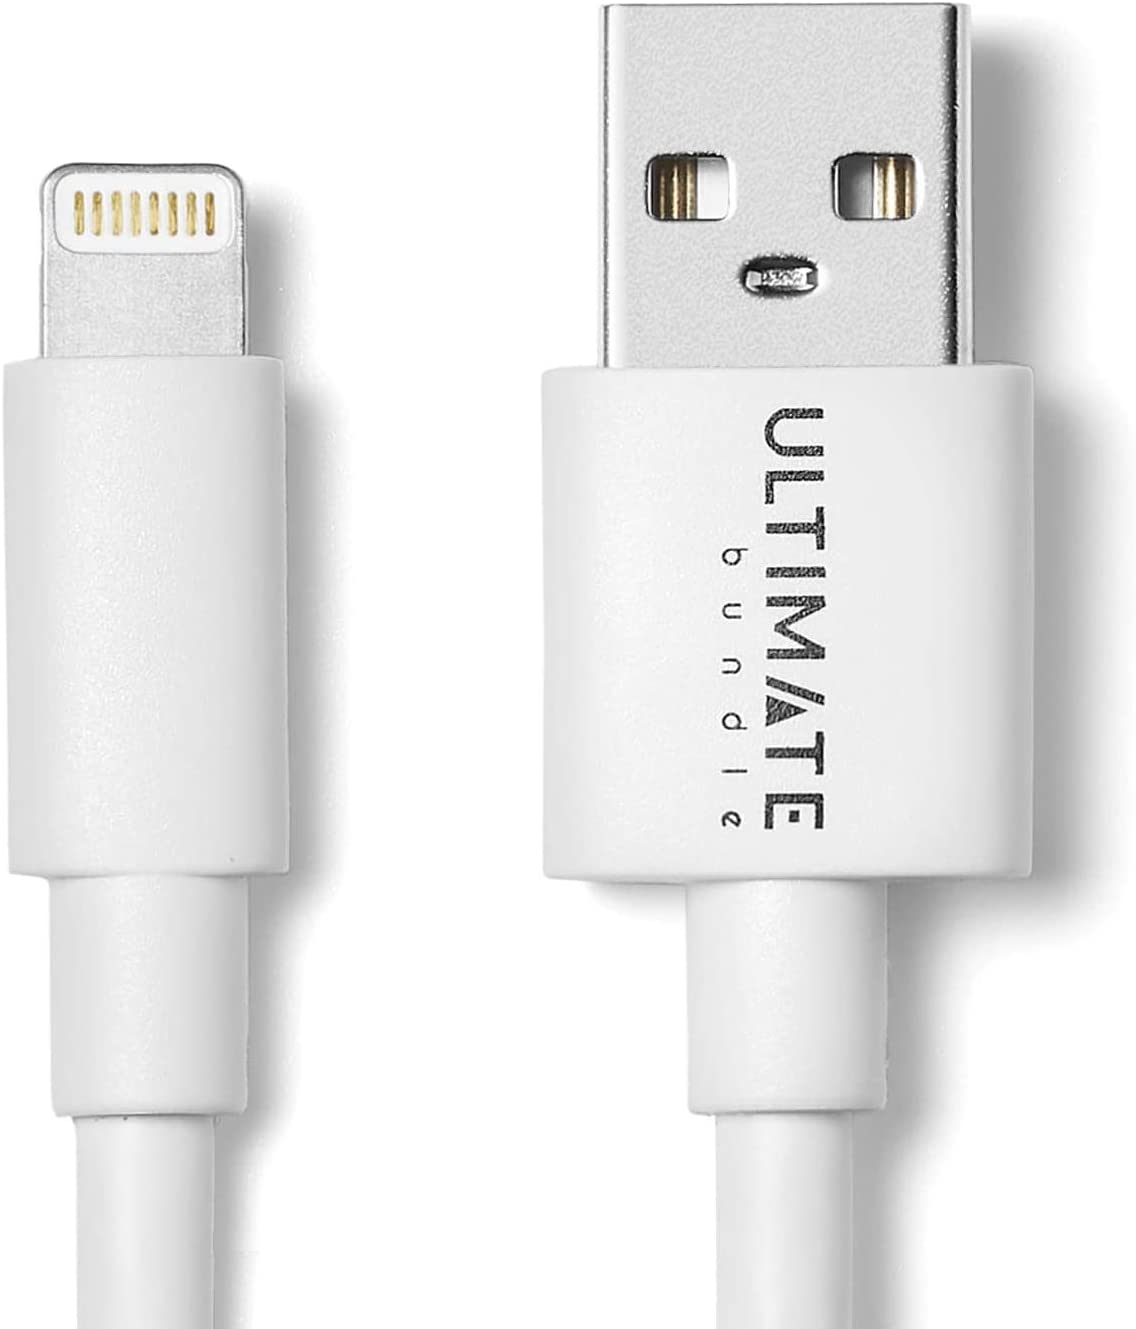 Ultimate 10ft Lightning Cable, MFi Certified, Apple iPhone Charger 10 Foot for iPhone 12 Mini Pro Max 11 Xs Xr X 8 SE Airpods iPad